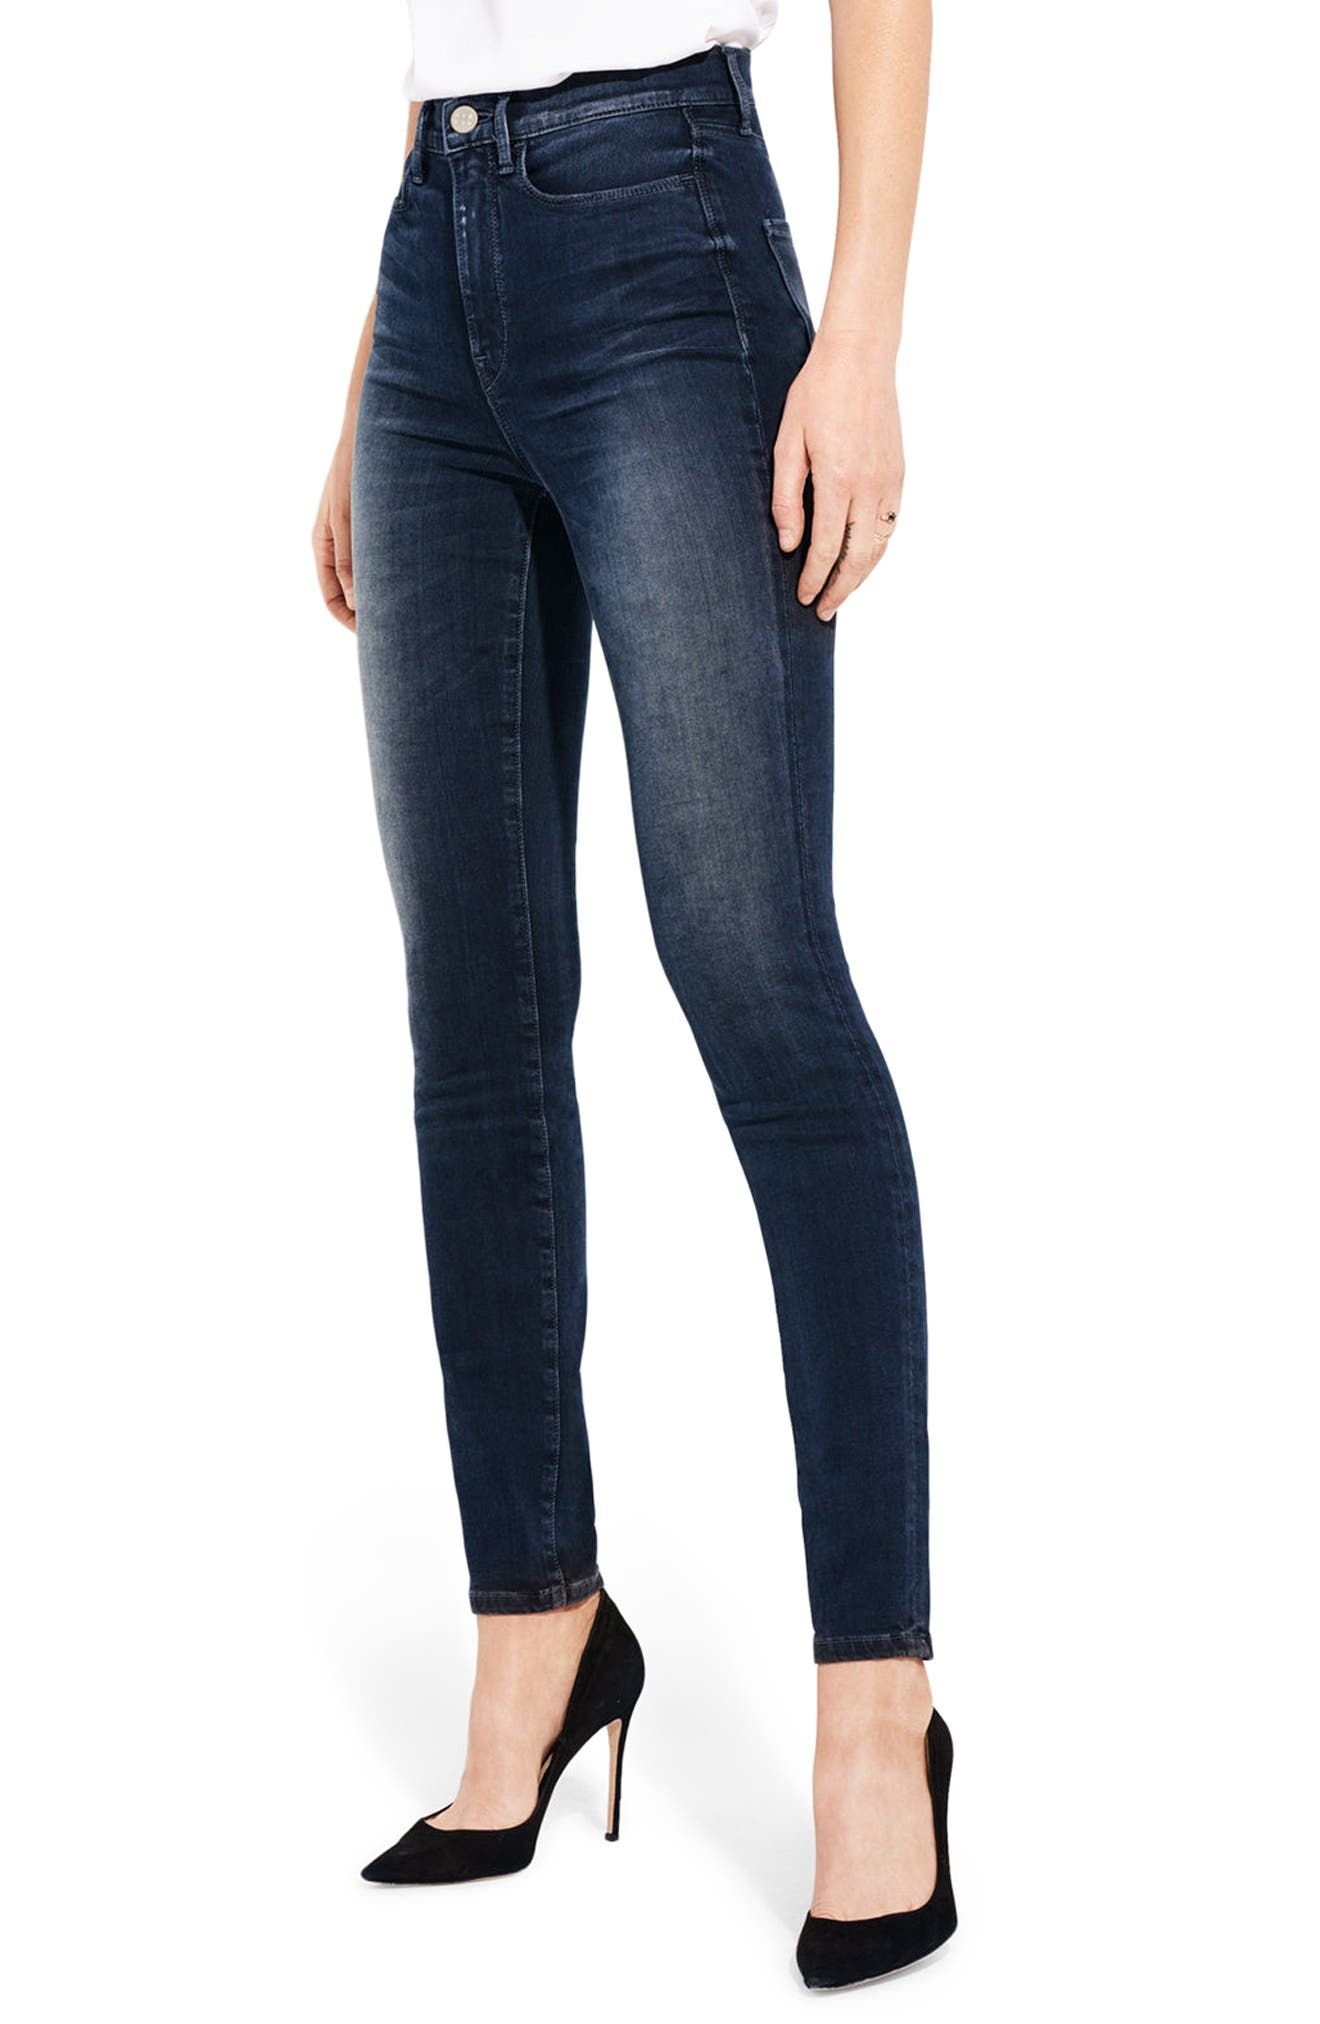 The Hi Rise High Waist Skinny Jeans,                             Alternate thumbnail 2, color,                             409